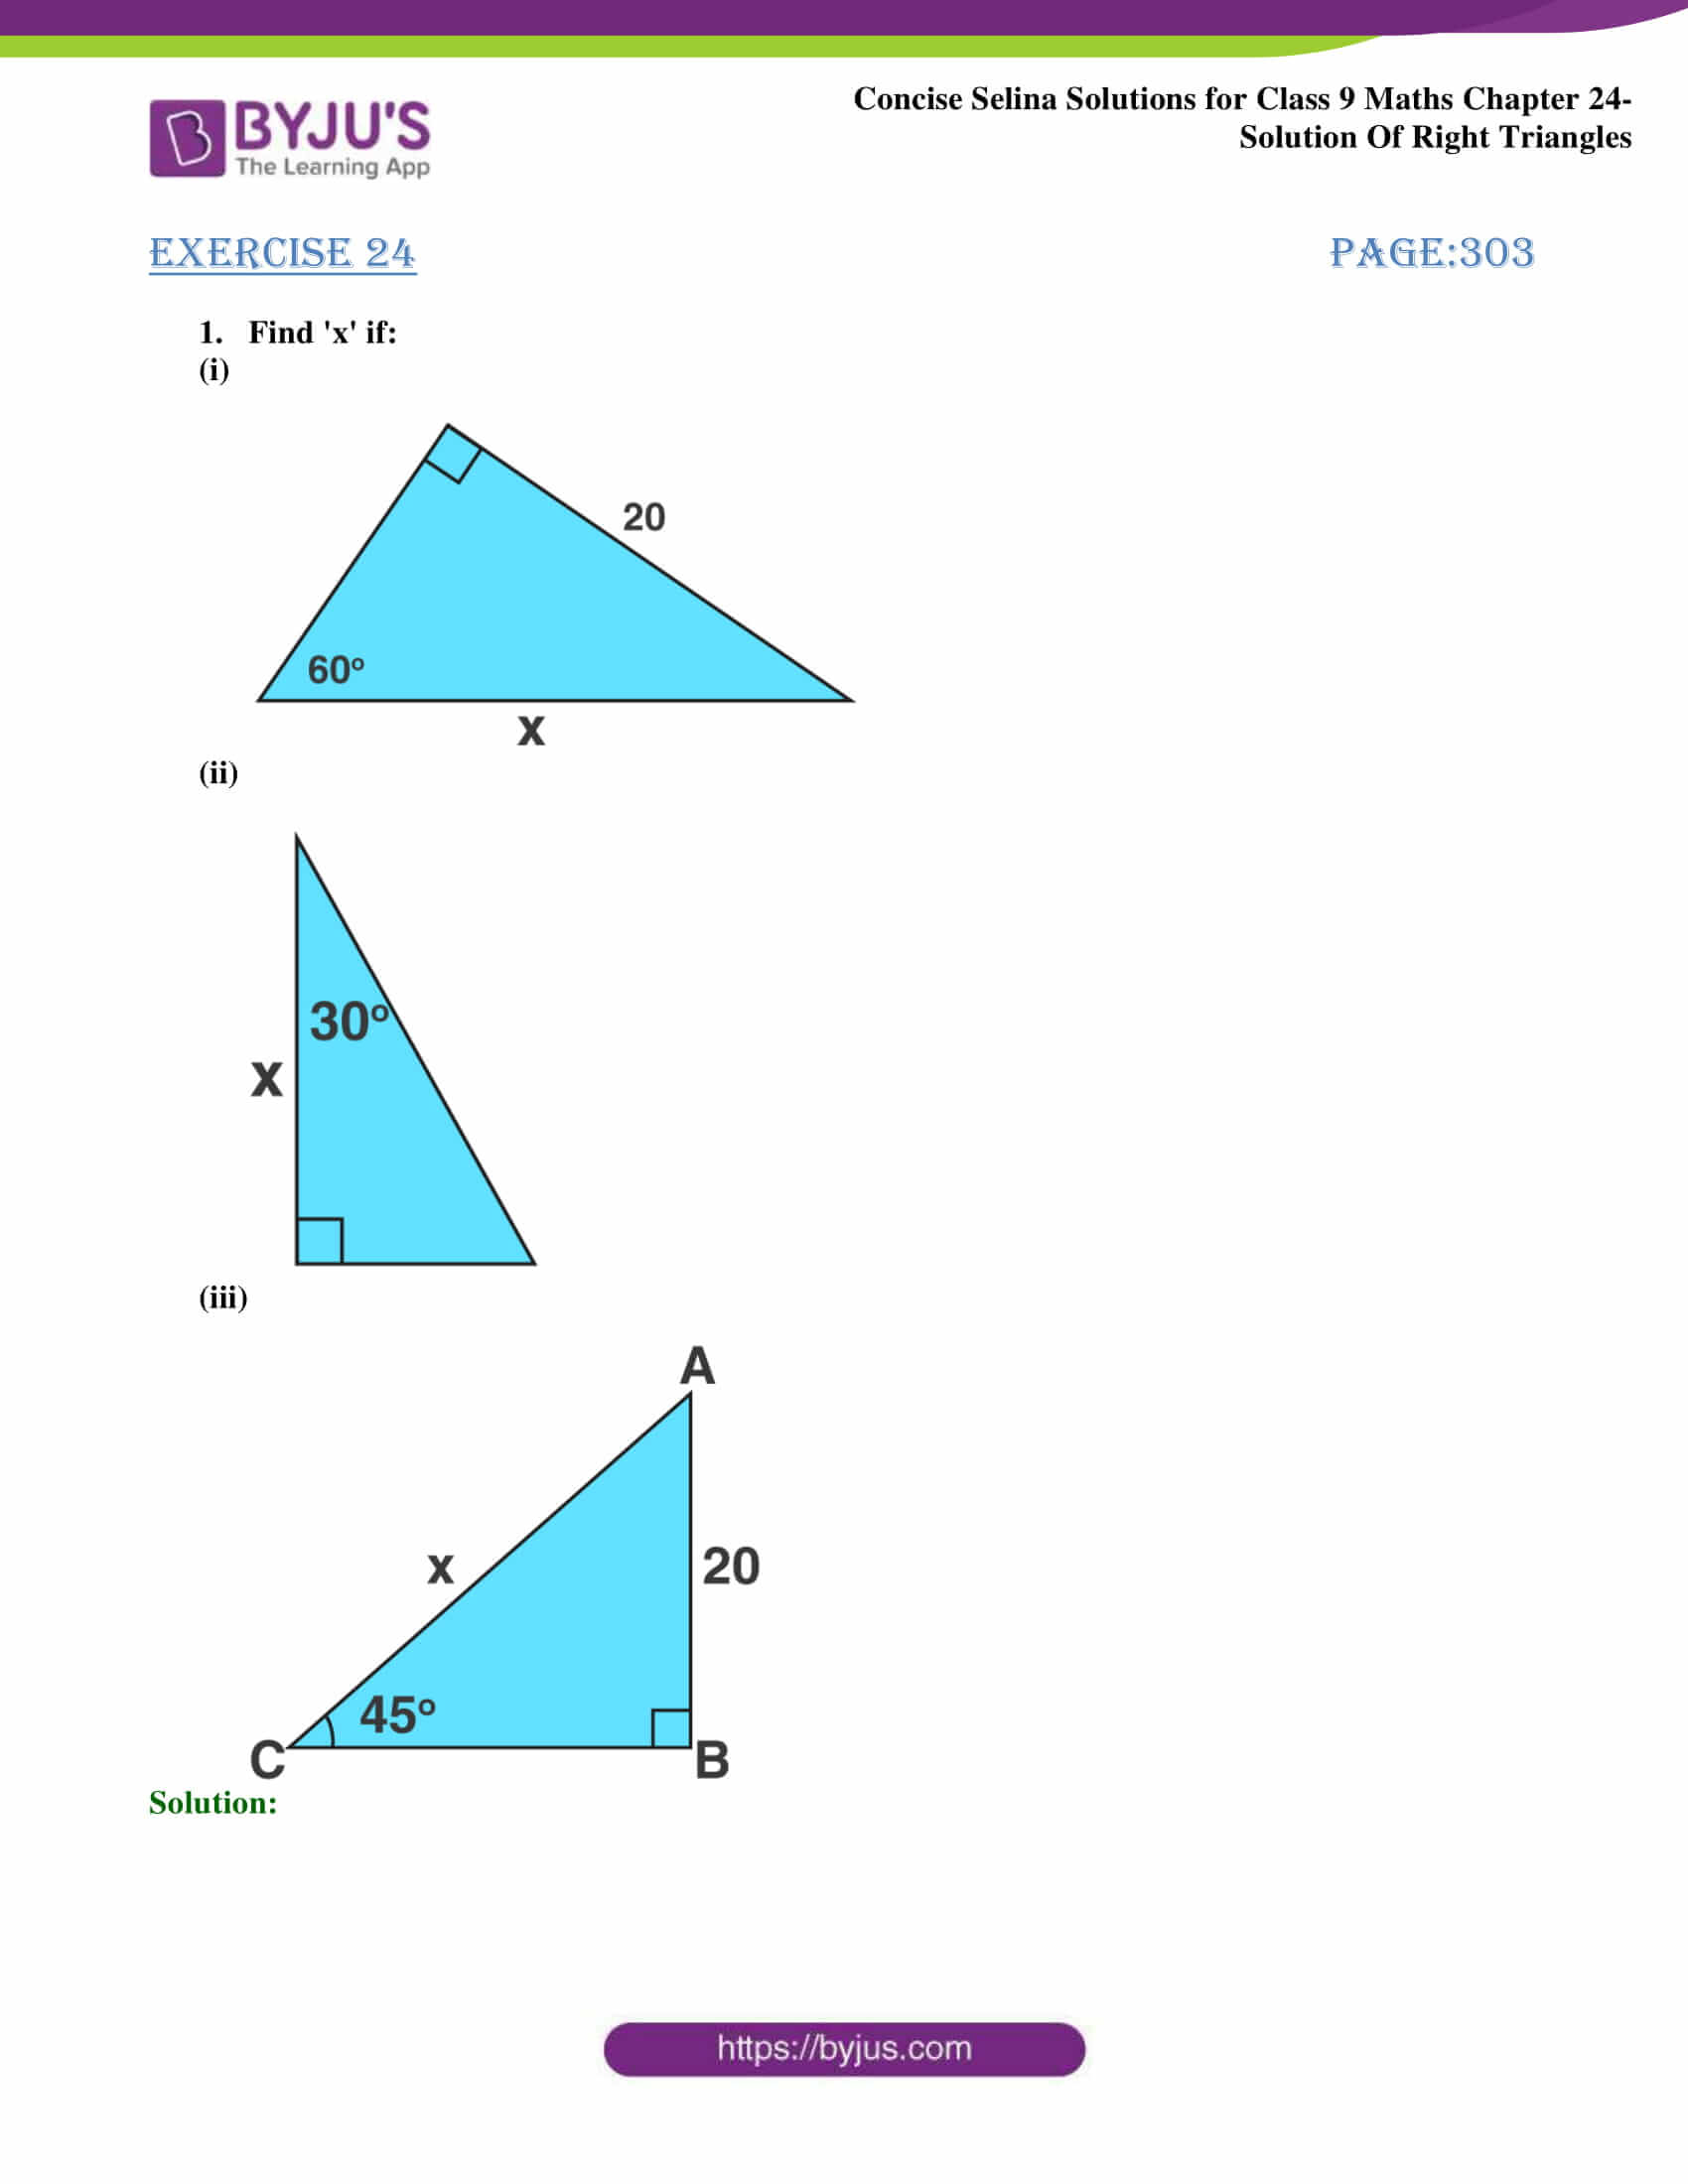 Concise Selina Solutions Class 9 Maths Chapter 24 Solution Of Right Triangles part 01